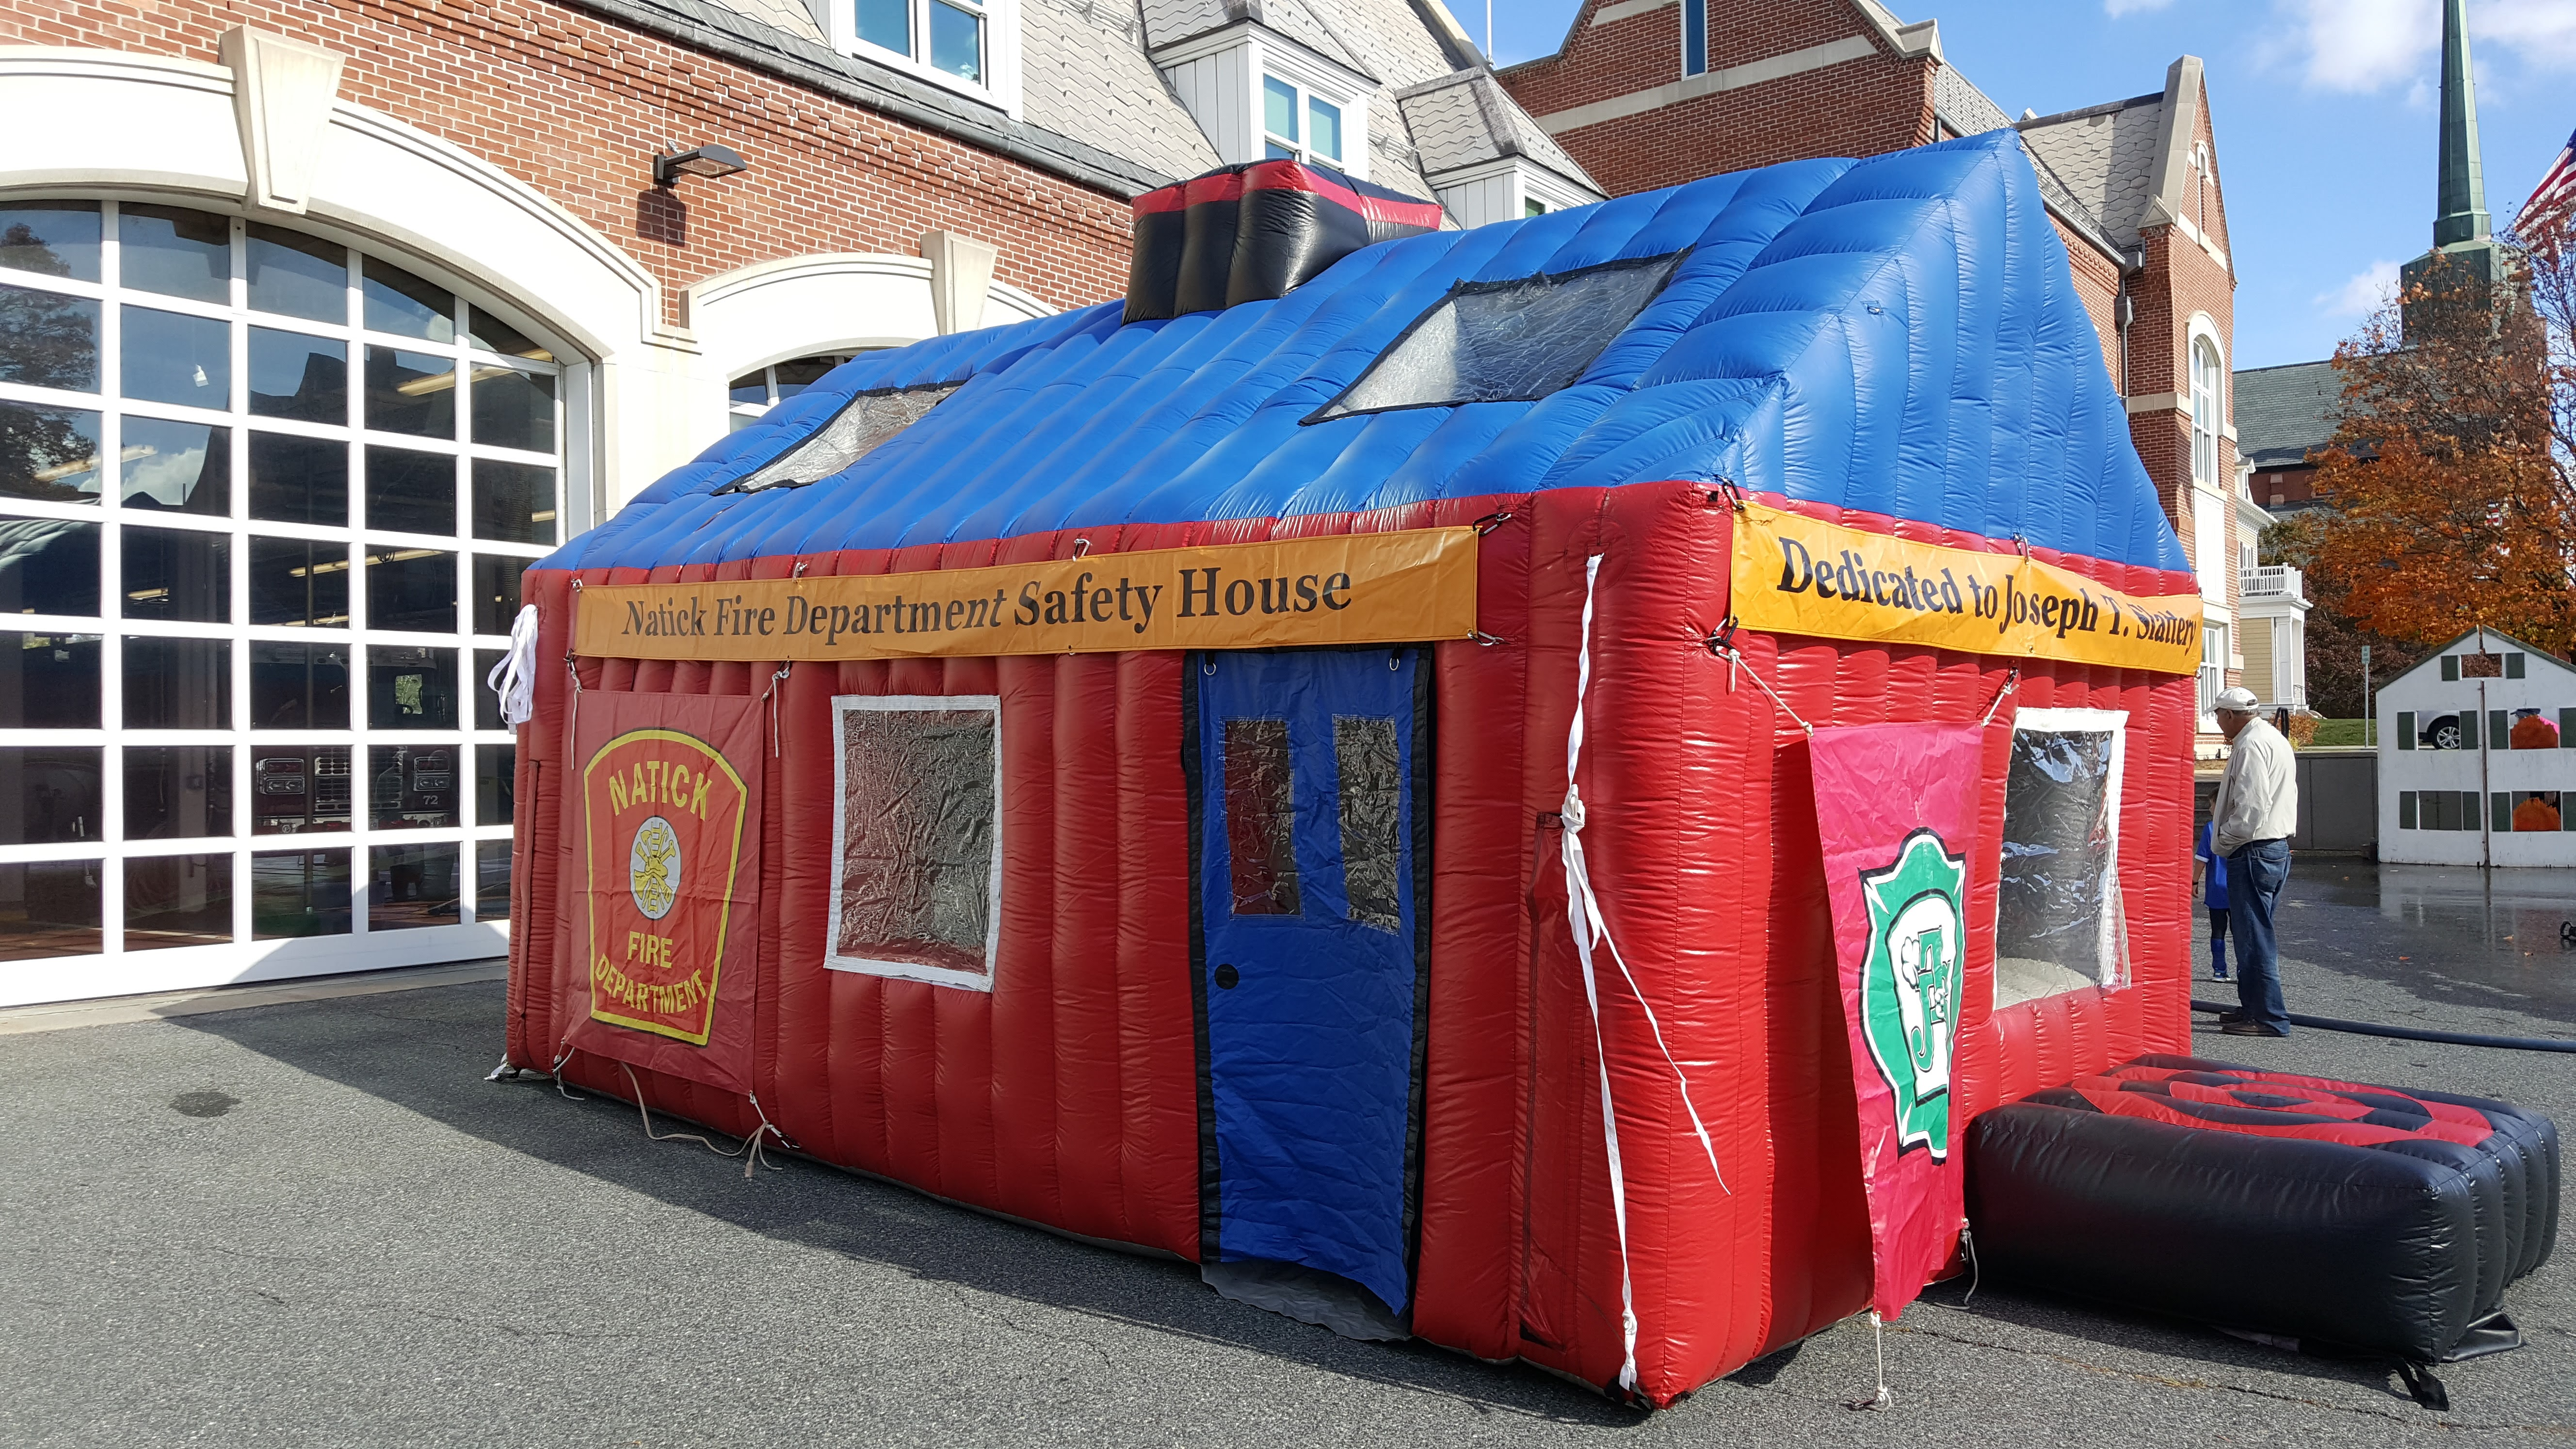 Fire Prevention Safety House